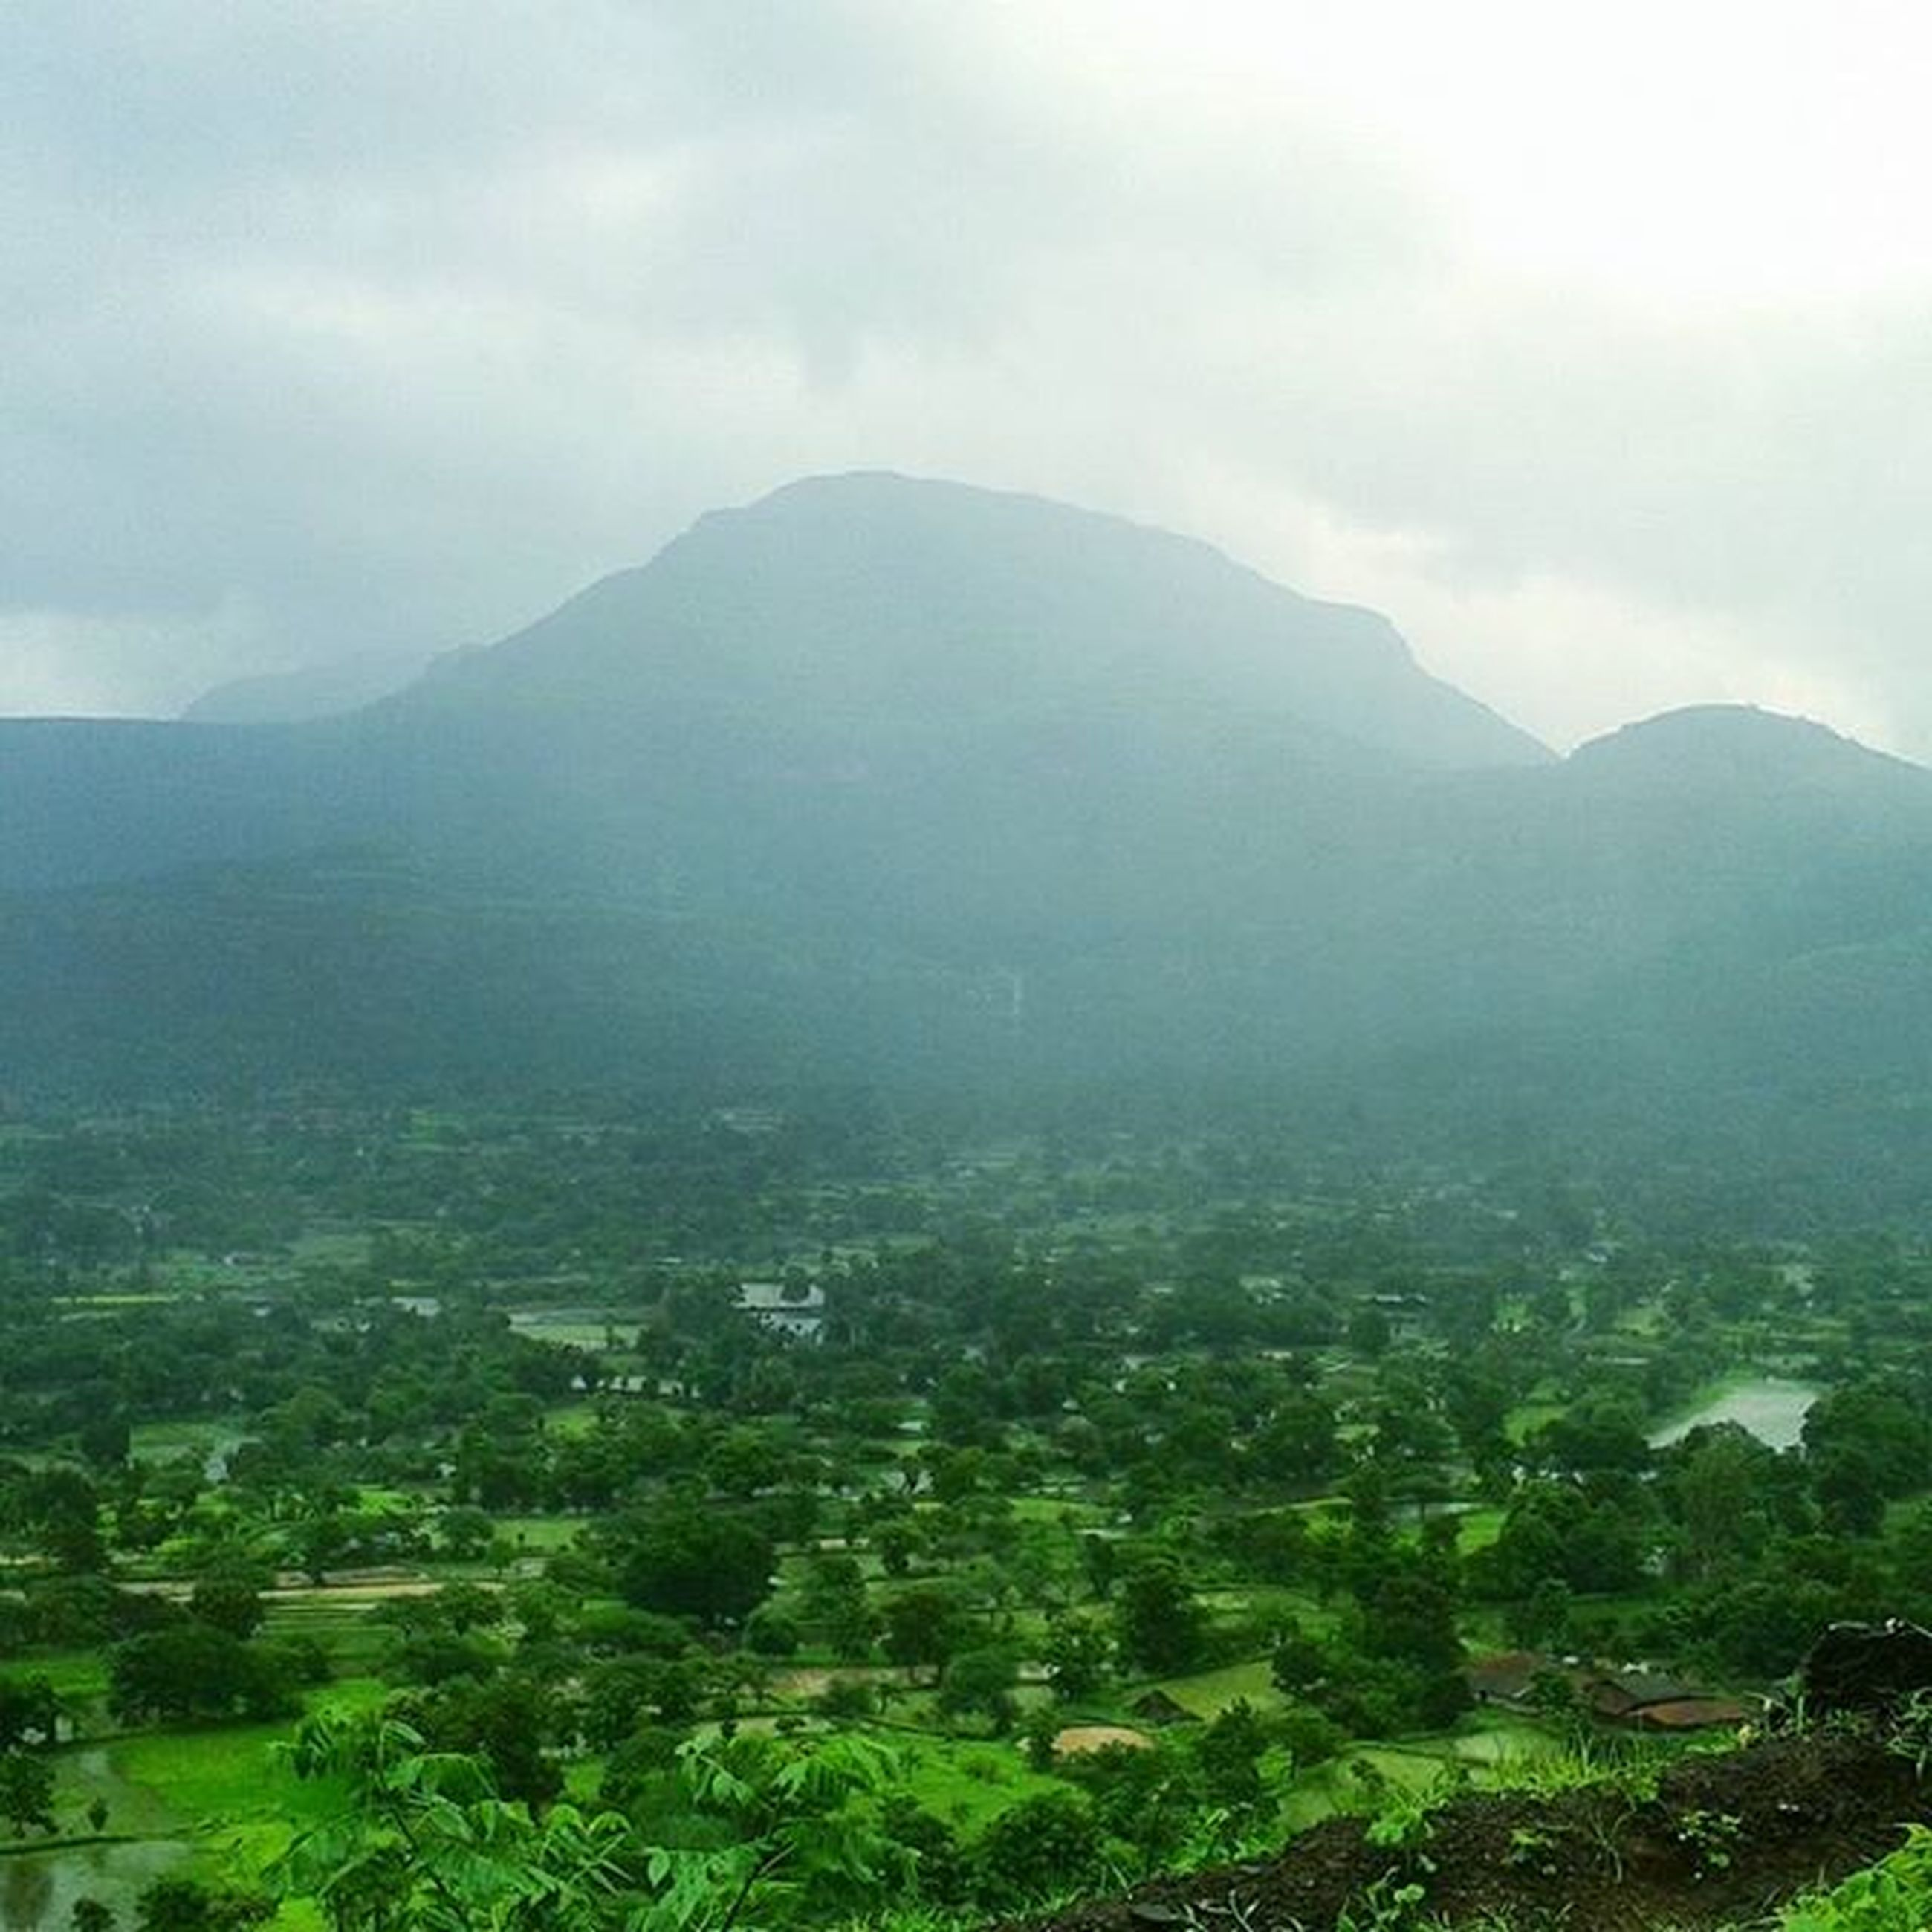 mountain, mountain range, tranquil scene, scenics, tranquility, landscape, beauty in nature, sky, tree, nature, green color, non-urban scene, valley, fog, idyllic, high angle view, lush foliage, hill, growth, day